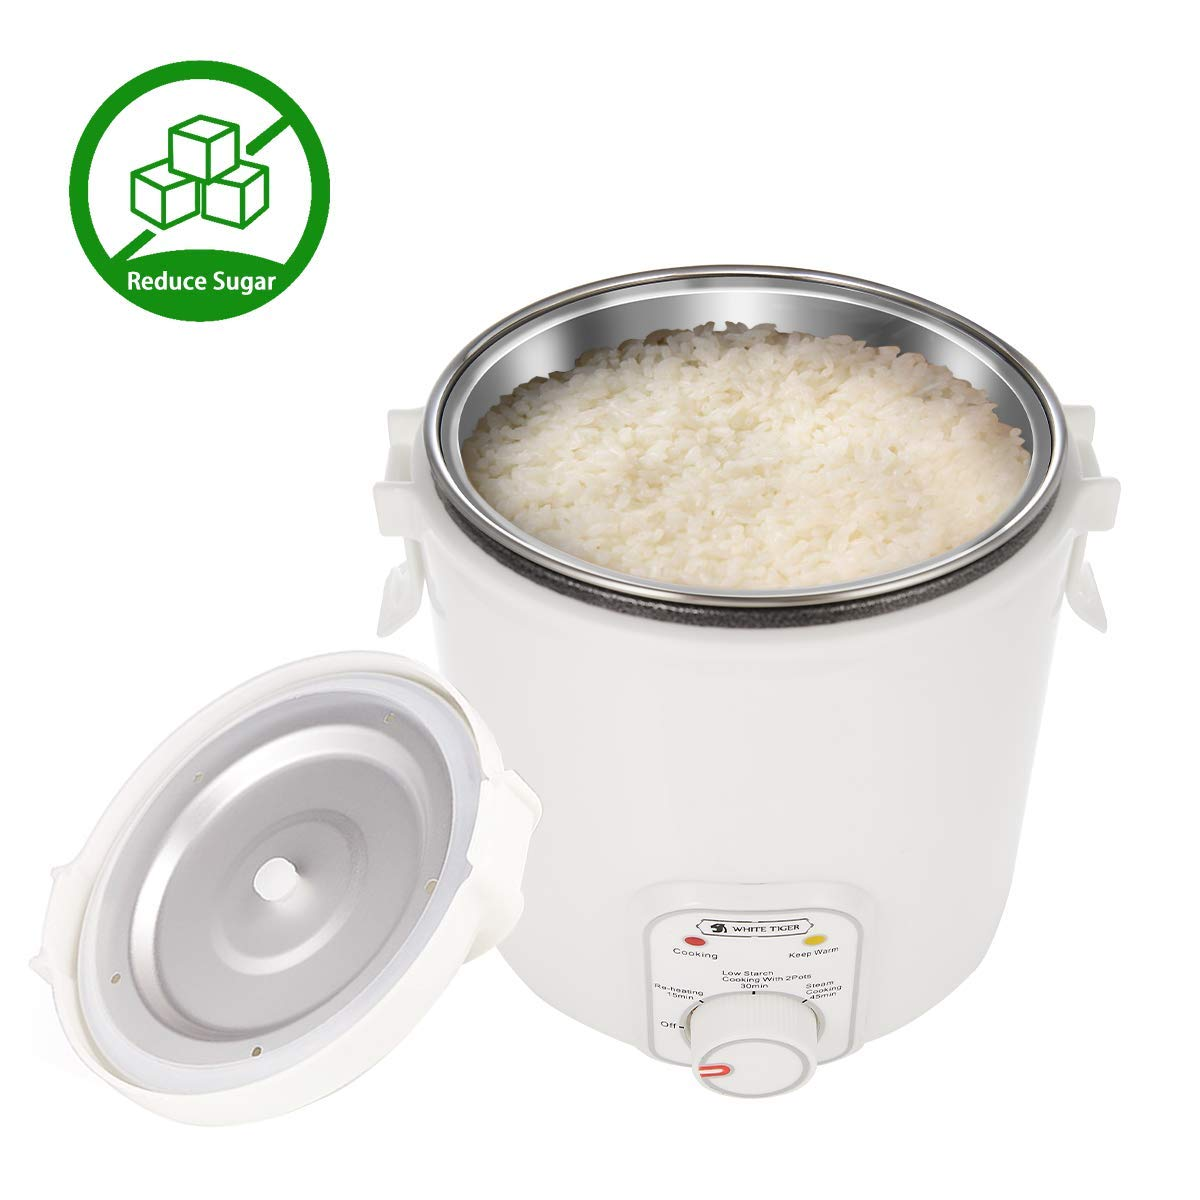 1.2L De-Sugar Mini Rice Cooker, WHITE TIGER Low Starch Cooking Portable Hypoglycemic Small Rice Cooker, Re-heating, Keep Warm, For 1-2 People - For Hyperglycemic,Obesity,Sportsman by WHITE TIGER